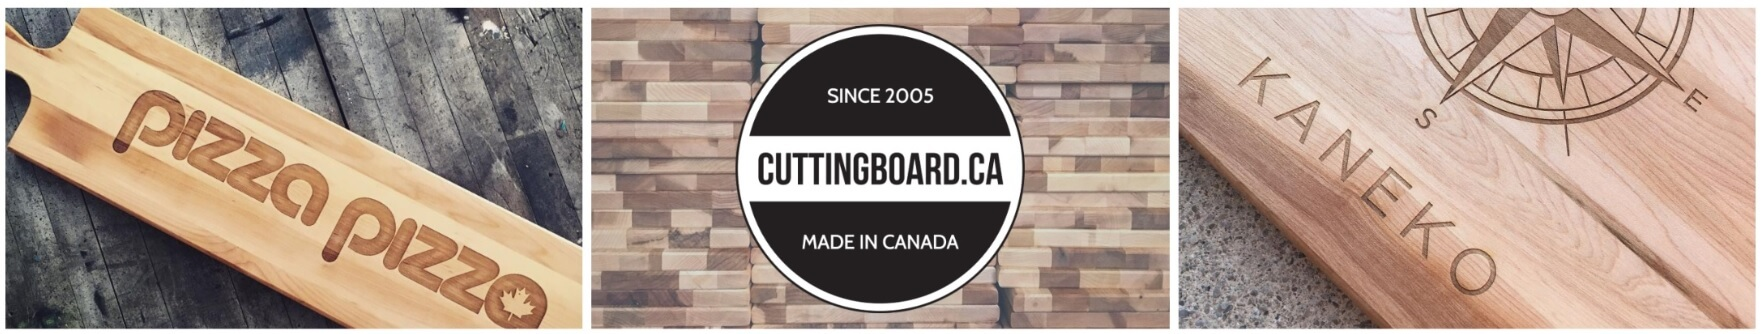 Personalized Cutting Boards Canada Cuttingboard.ca